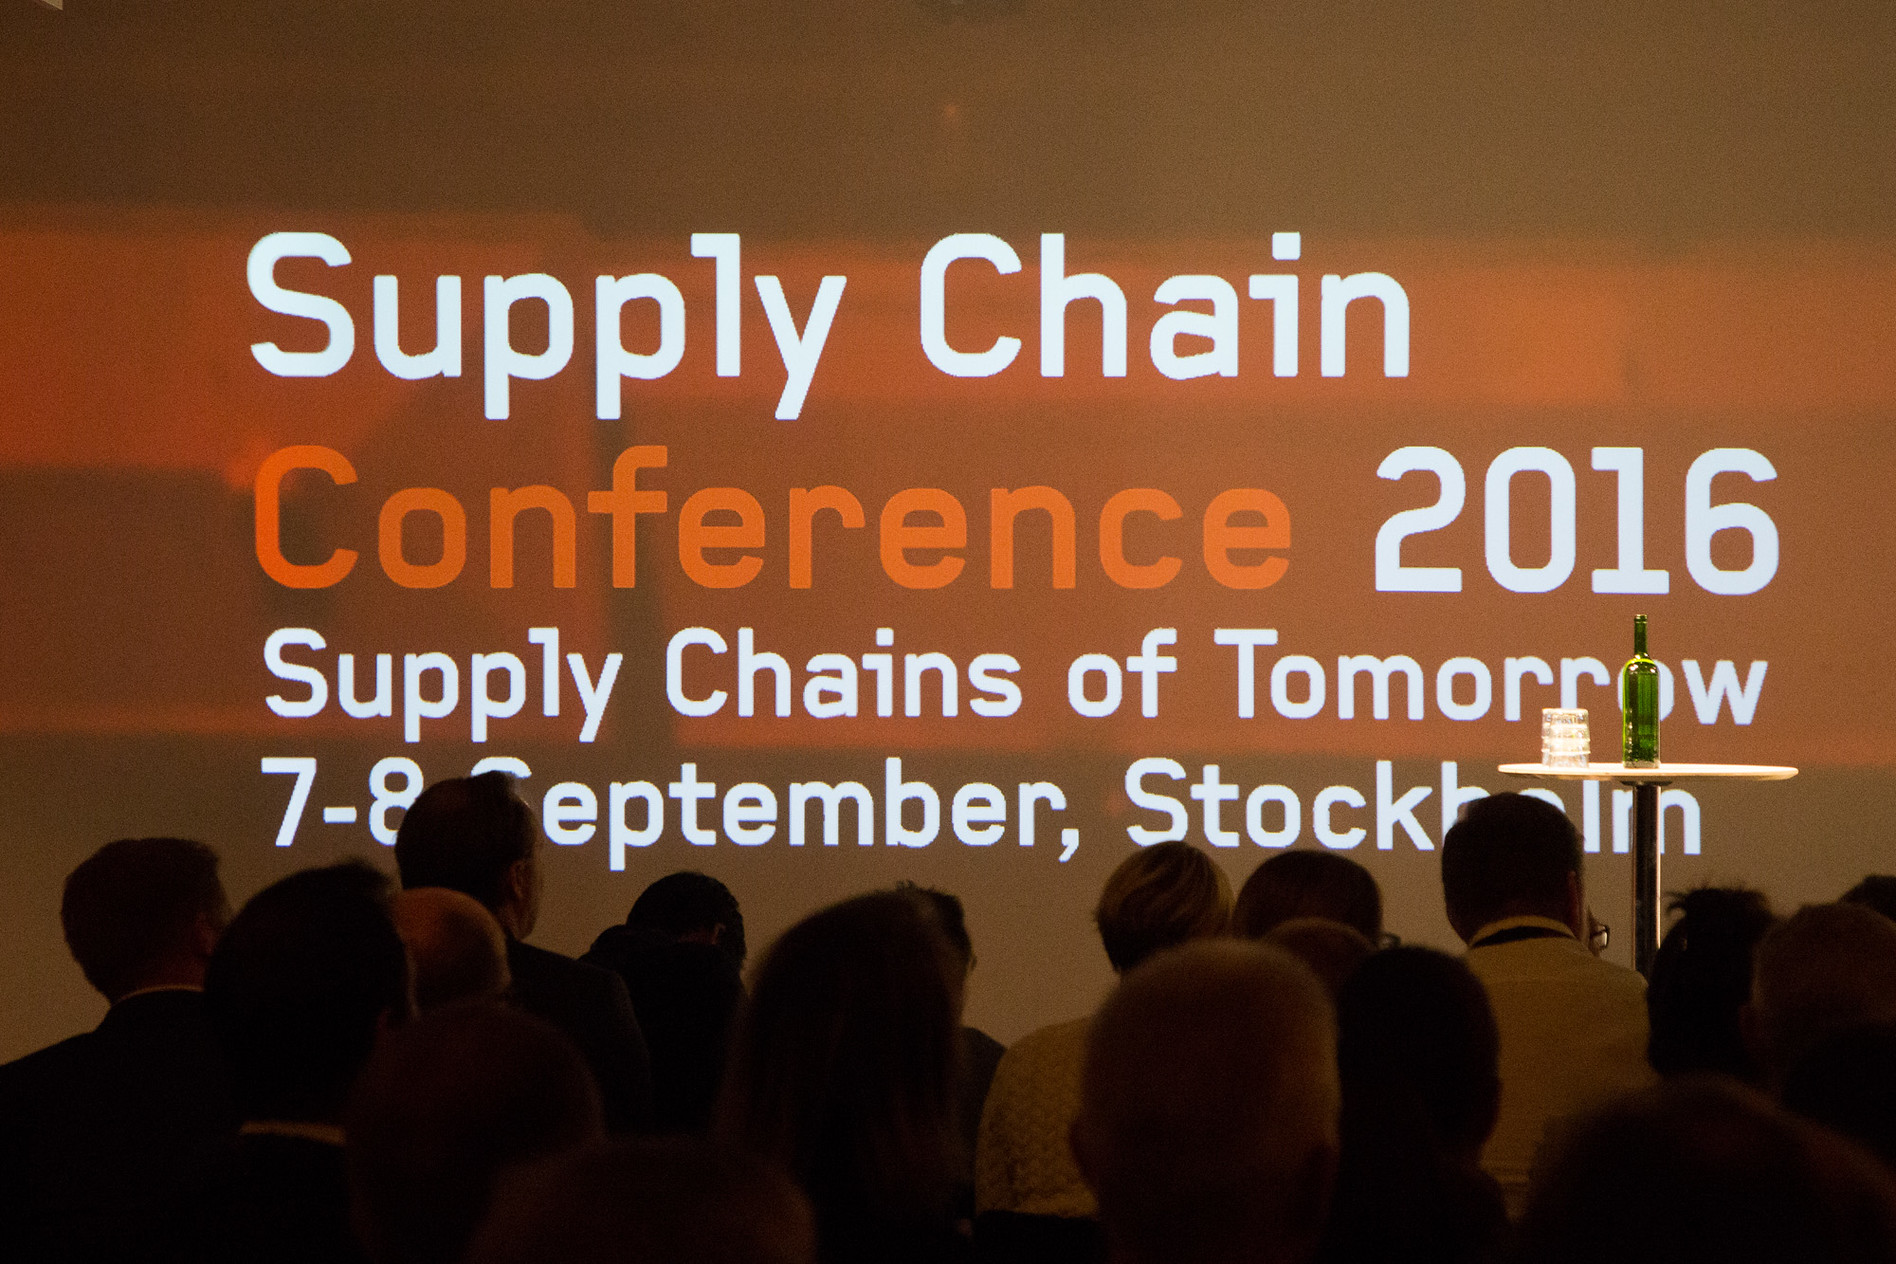 Supply Chain Conference 2016